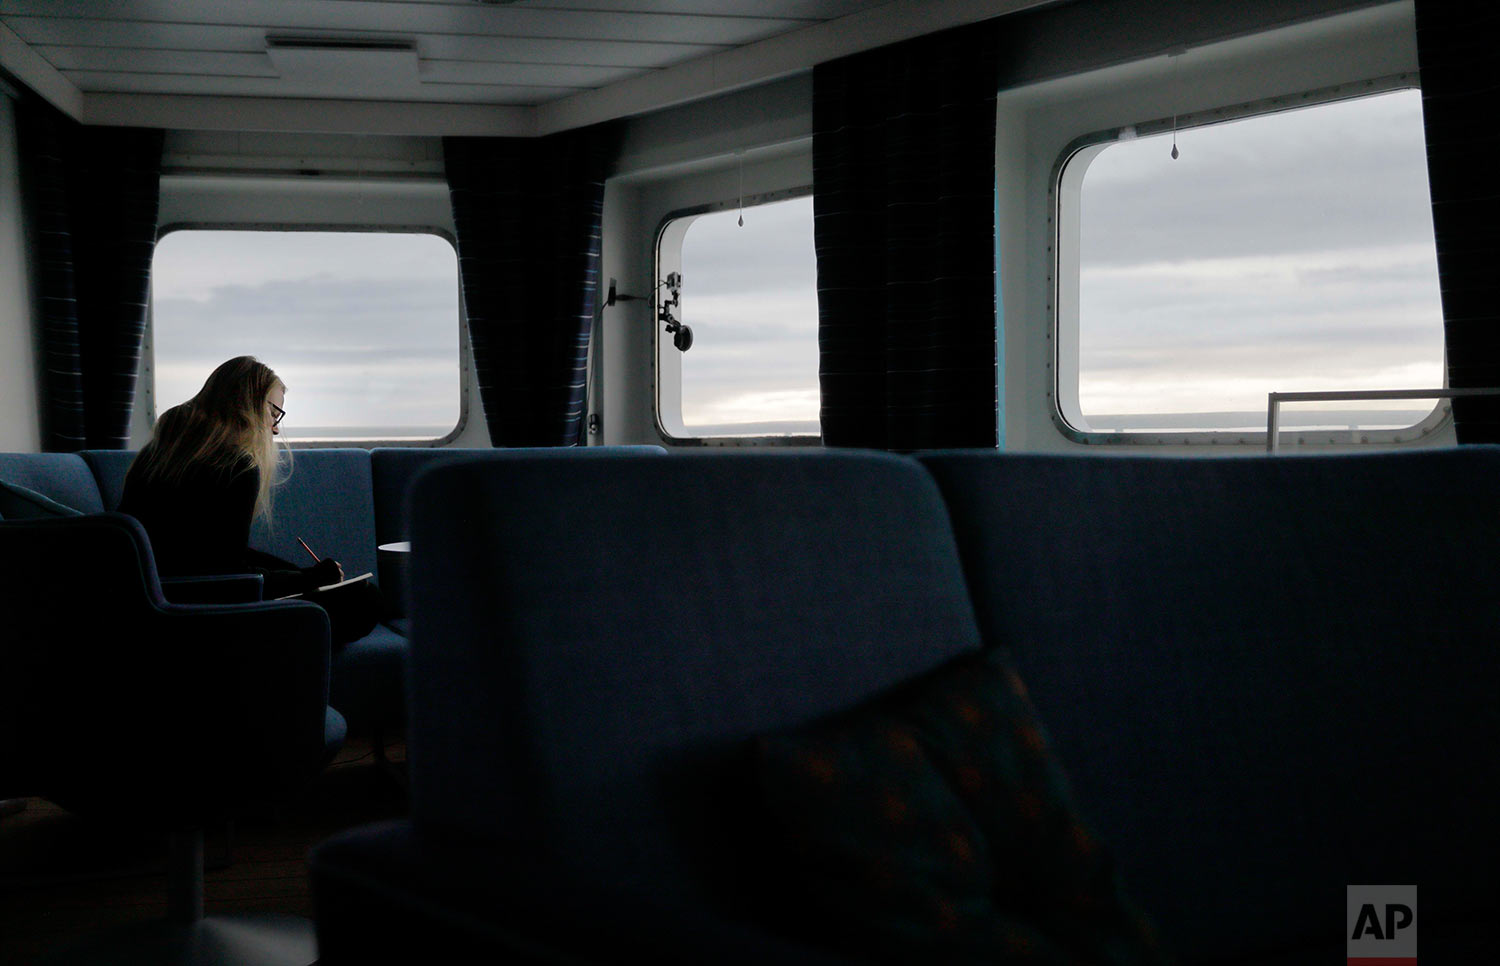 "Daylight lingers behind the clouds at midnight as researcher Tiina Jaaskelainen writes in her diary aboard the Finnish icebreaker MSV Nordica while traversing the Northwest Passage though the Canadian Arctic Archipelago, early Monday, July 24, 2017. ""Midnight is the best time to write your research diary. Especially when the sea gets a bit rough and the rest of the special personnel have gone to sleep,"" said Jaaskelainen who is exploring conflicts between local communities and extractive industries. ""You start seeing things from a different angle and small things become meaningful."" (AP Photo/David Goldman)"